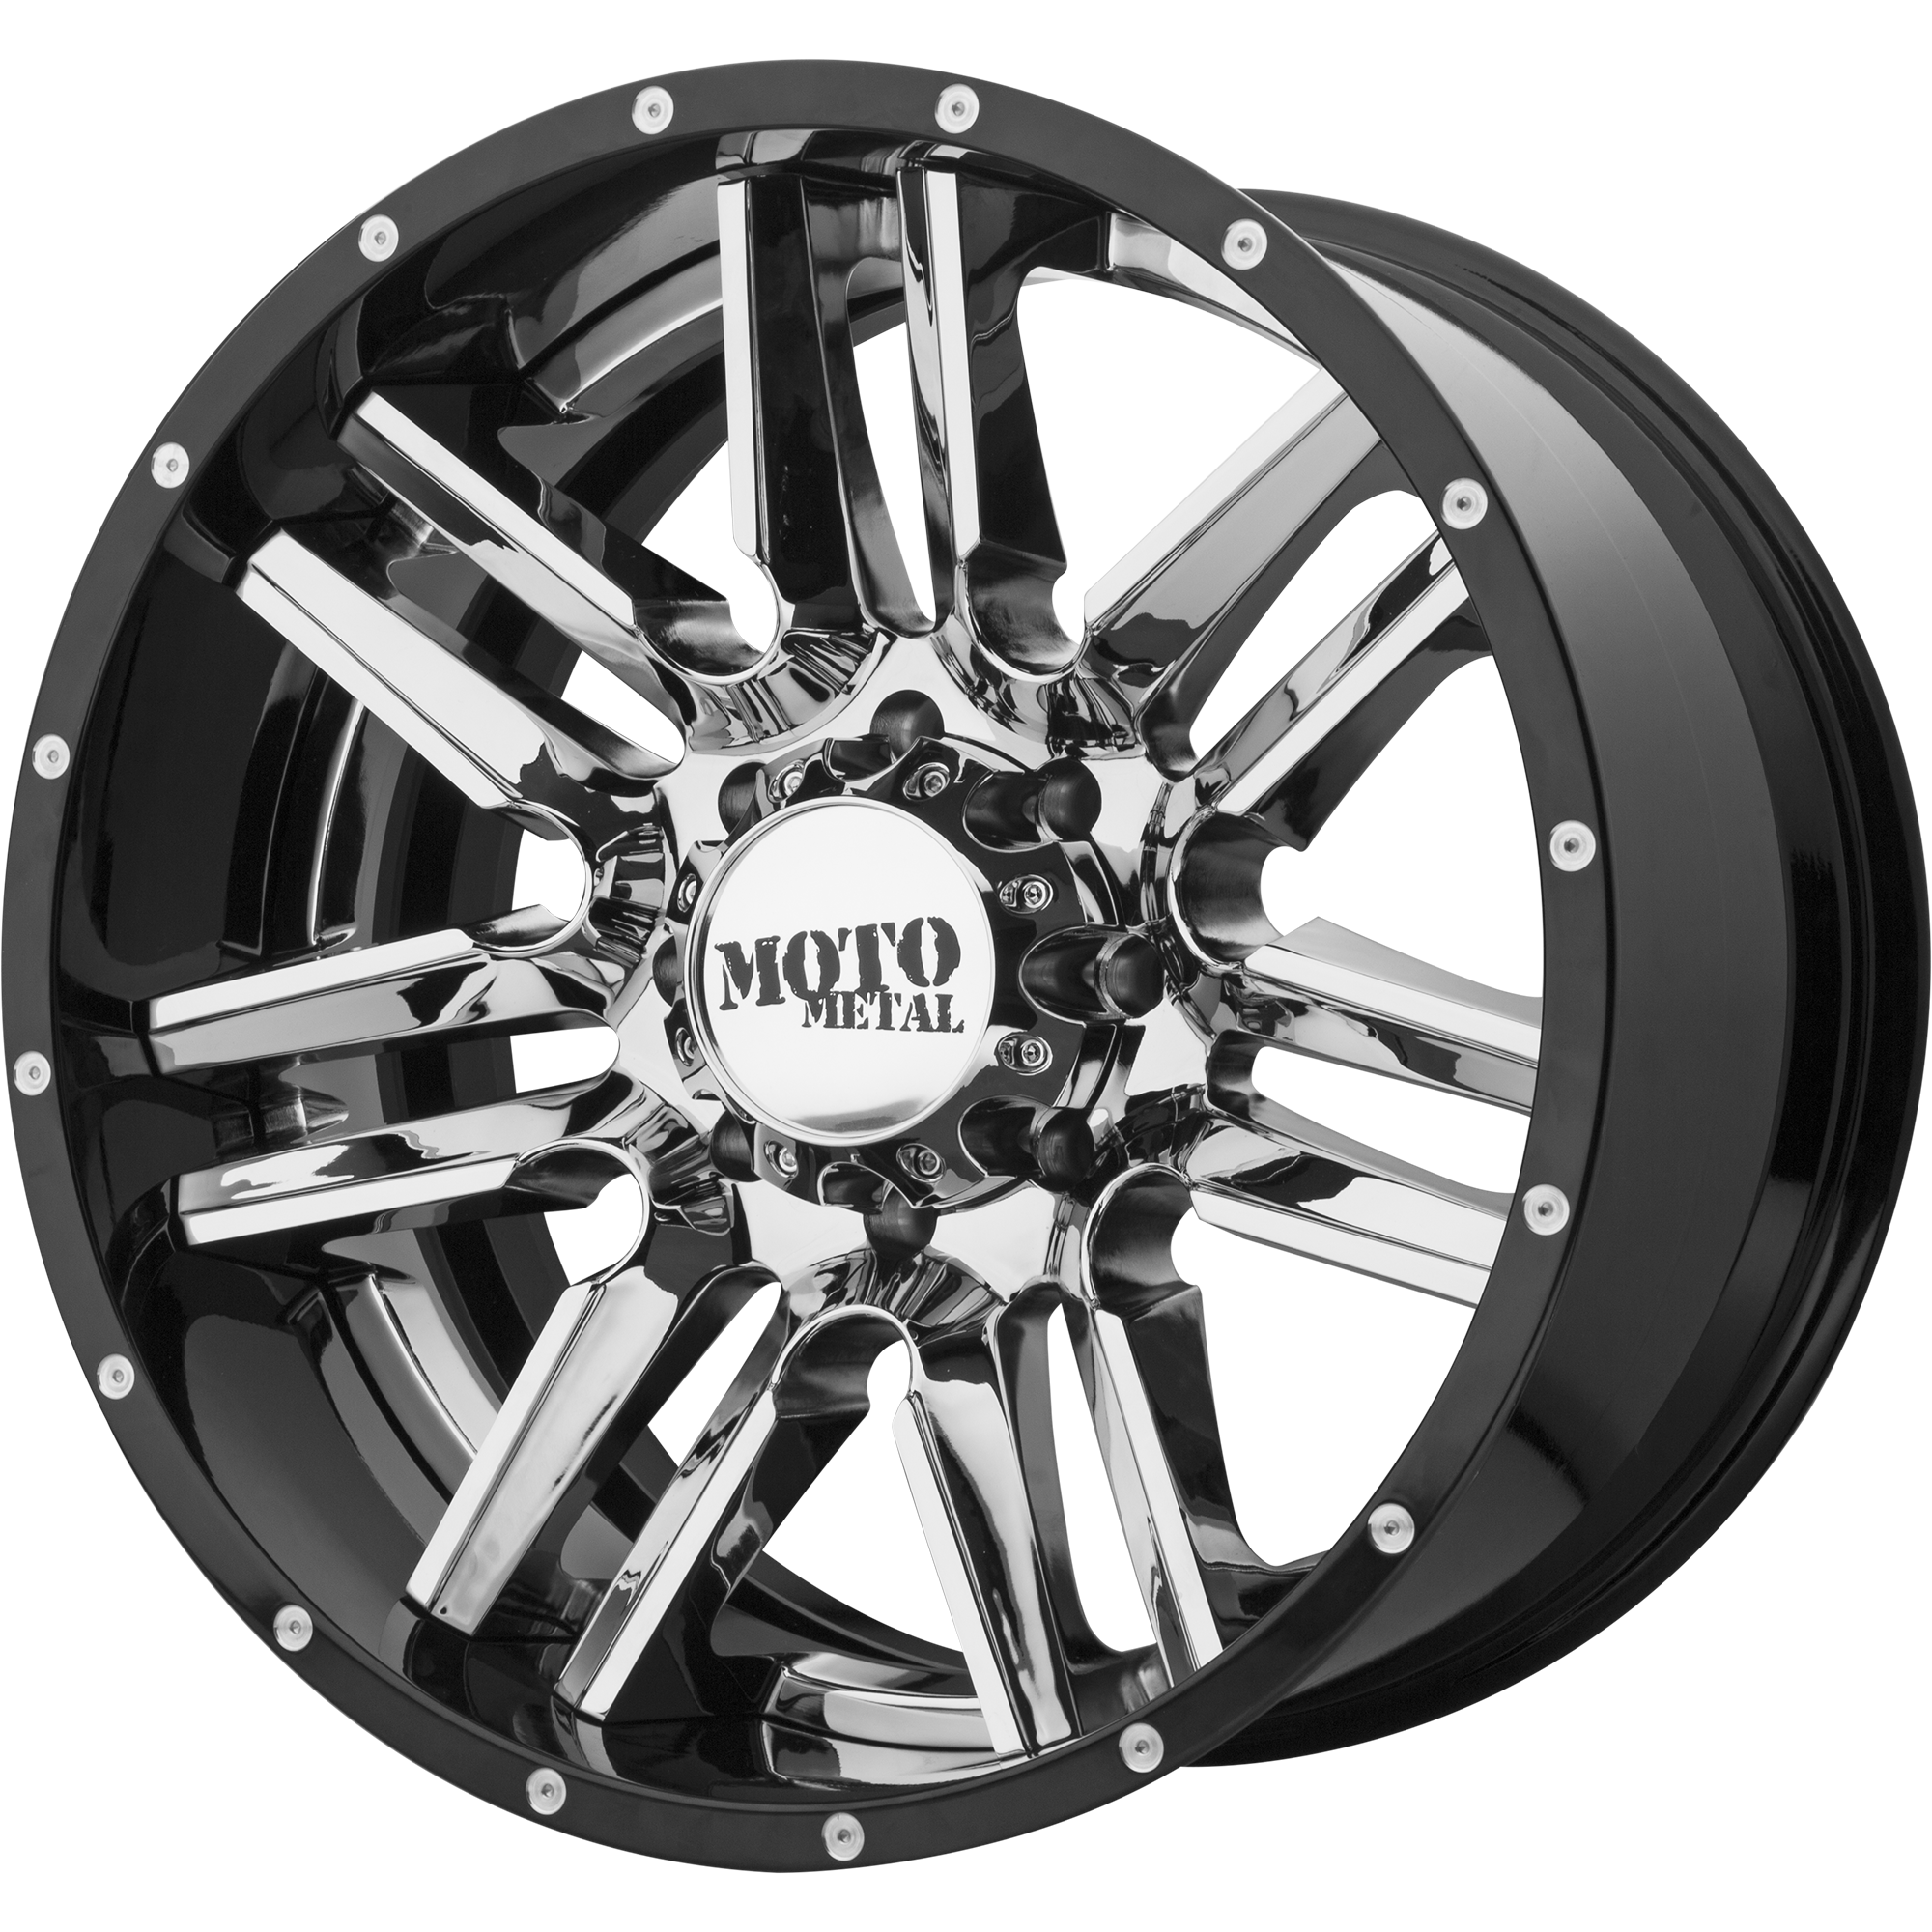 Moto Metal Offroad Wheels MO202 Chrome CENTER w/ Gloss Black Milled Lip